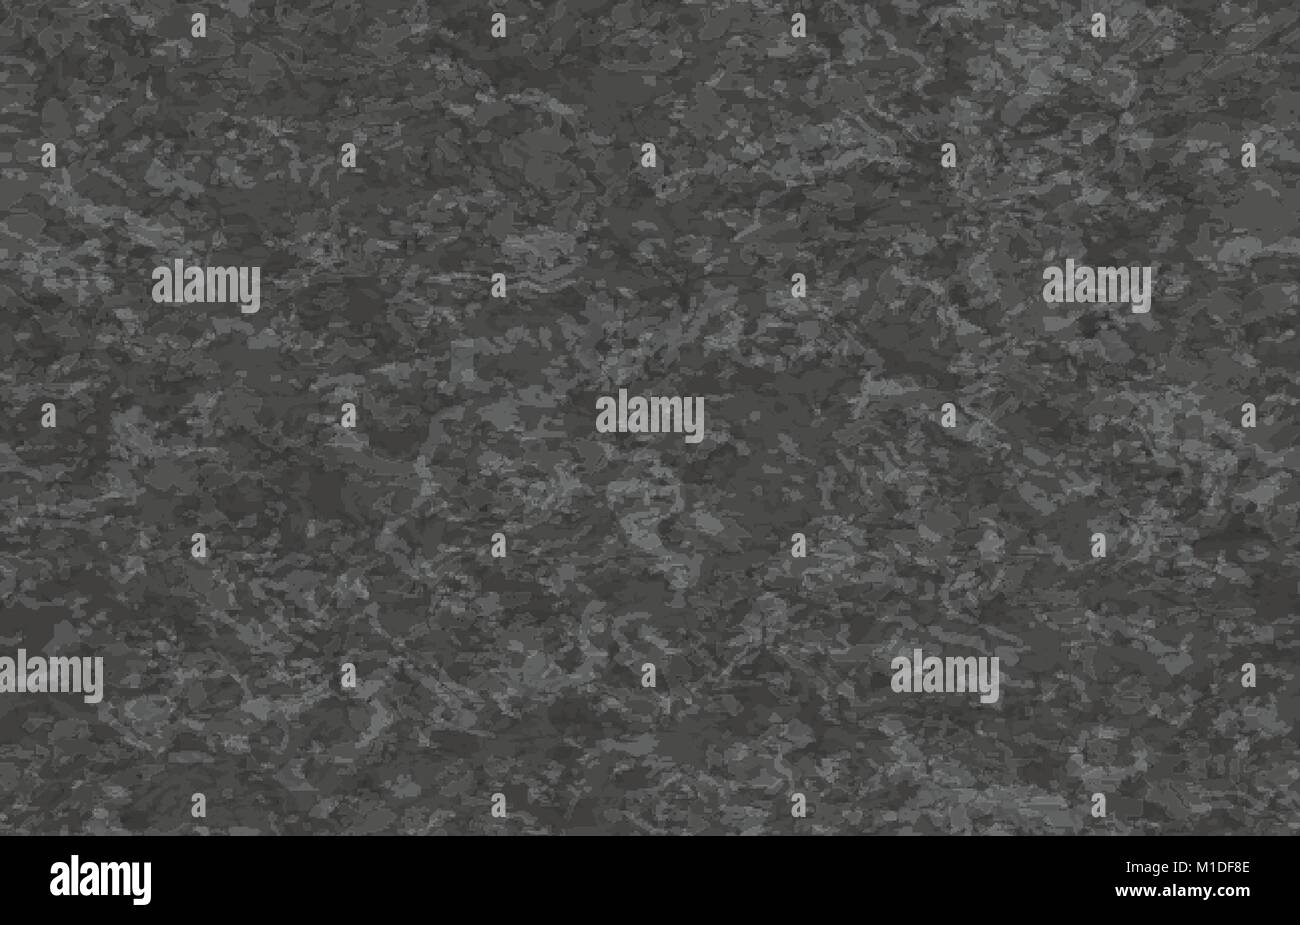 Abstract Dark Gray Marble Texture Vector Background Stock Vector Image Art Alamy